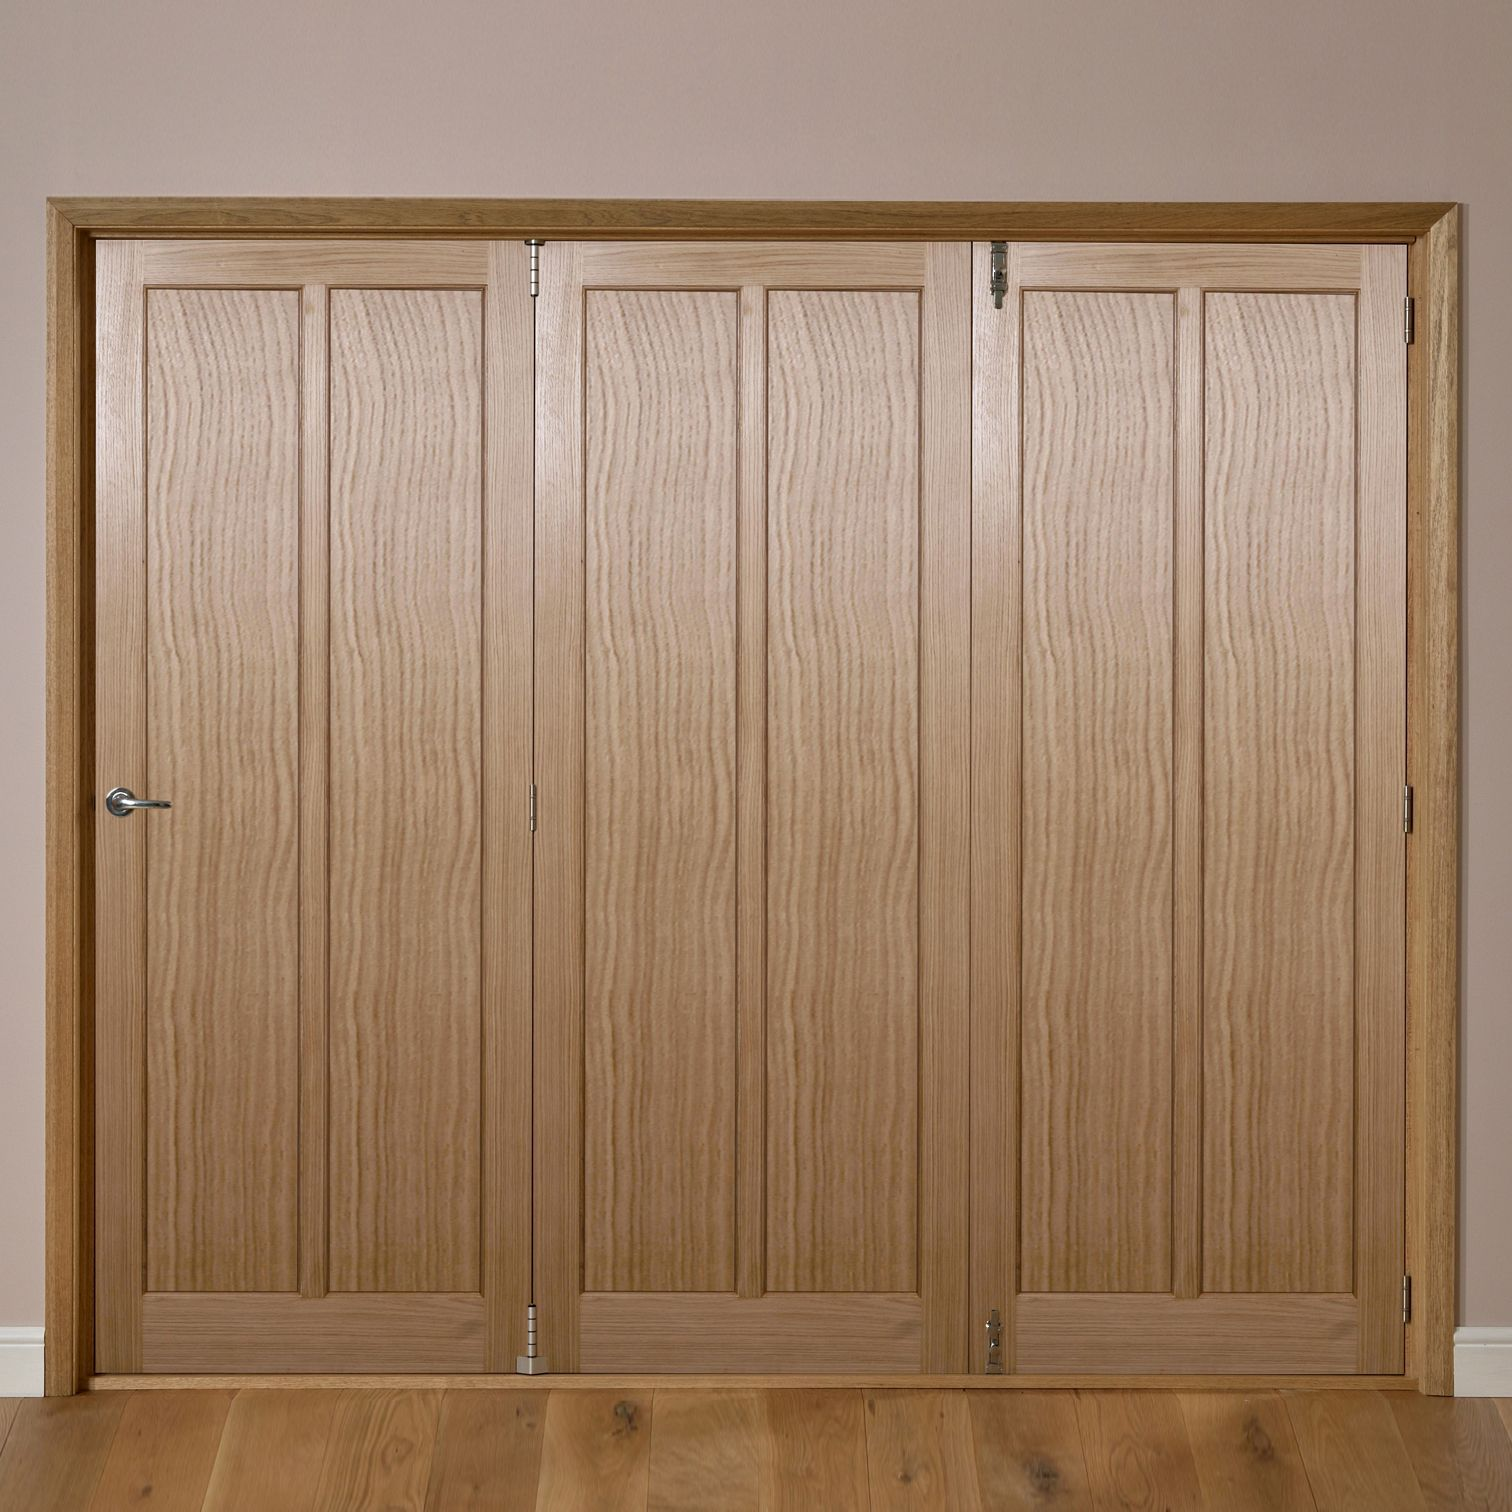 Carron 2 panel oak veneer internal folding door rh h for Wood veneer garage doors